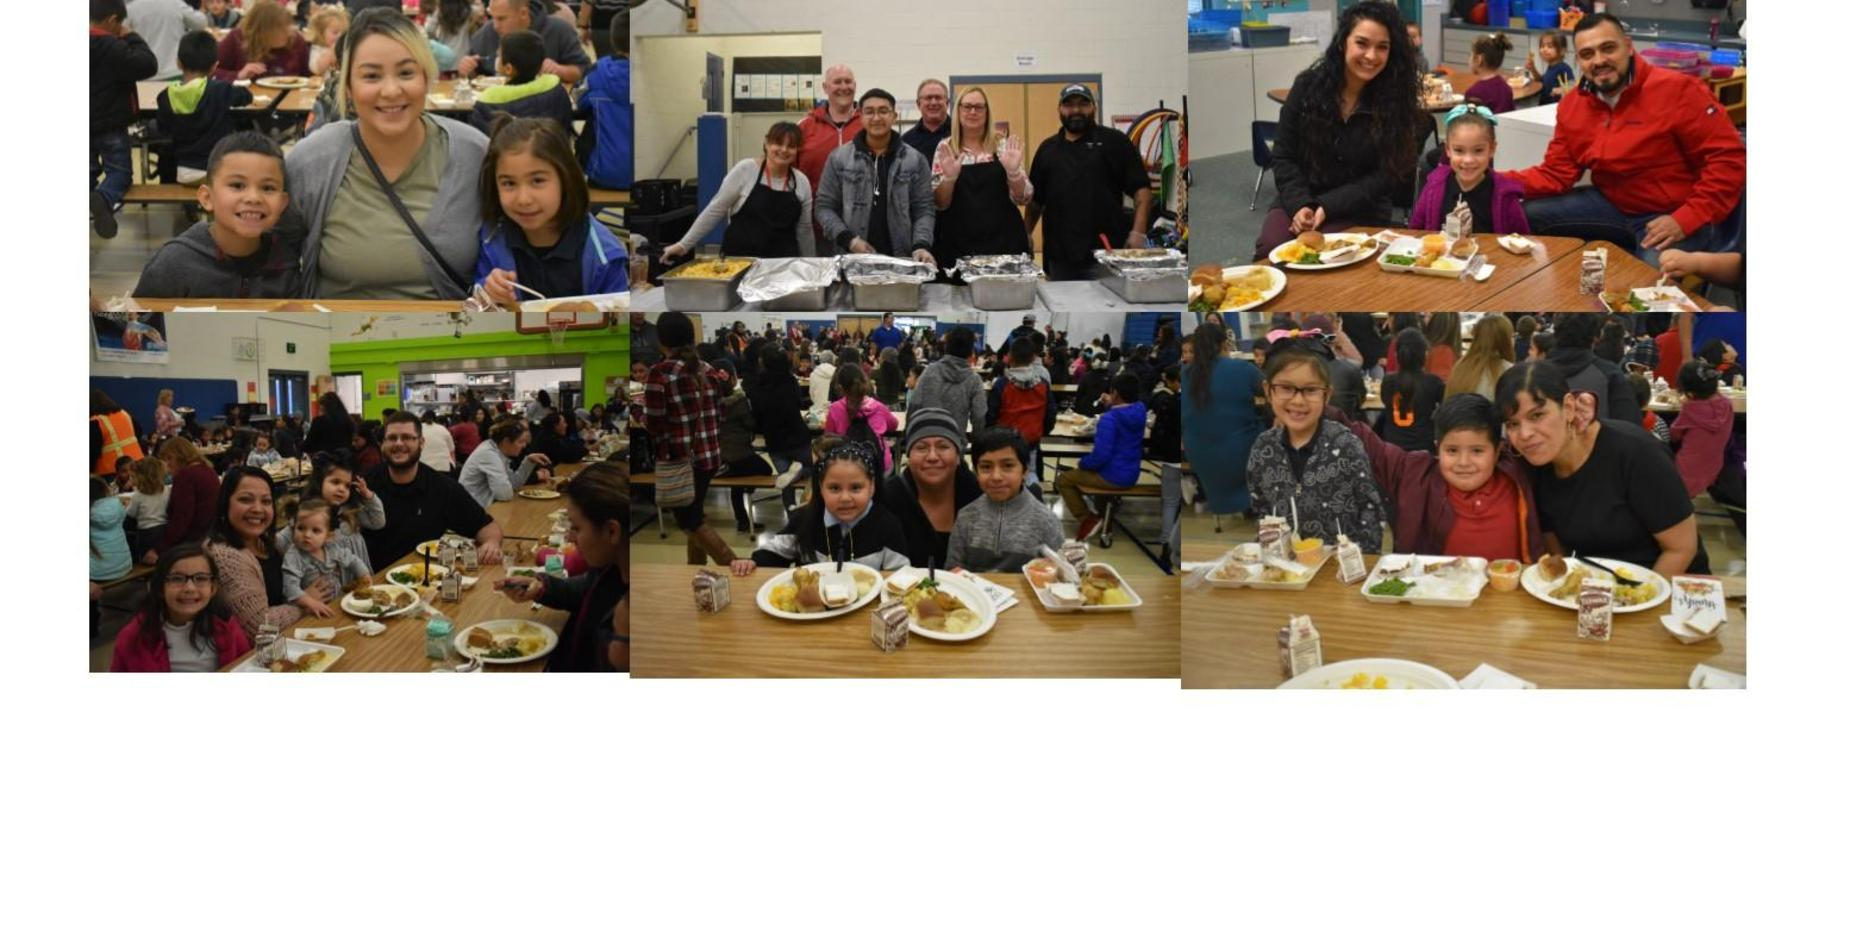 Families eating at our family luncheon.